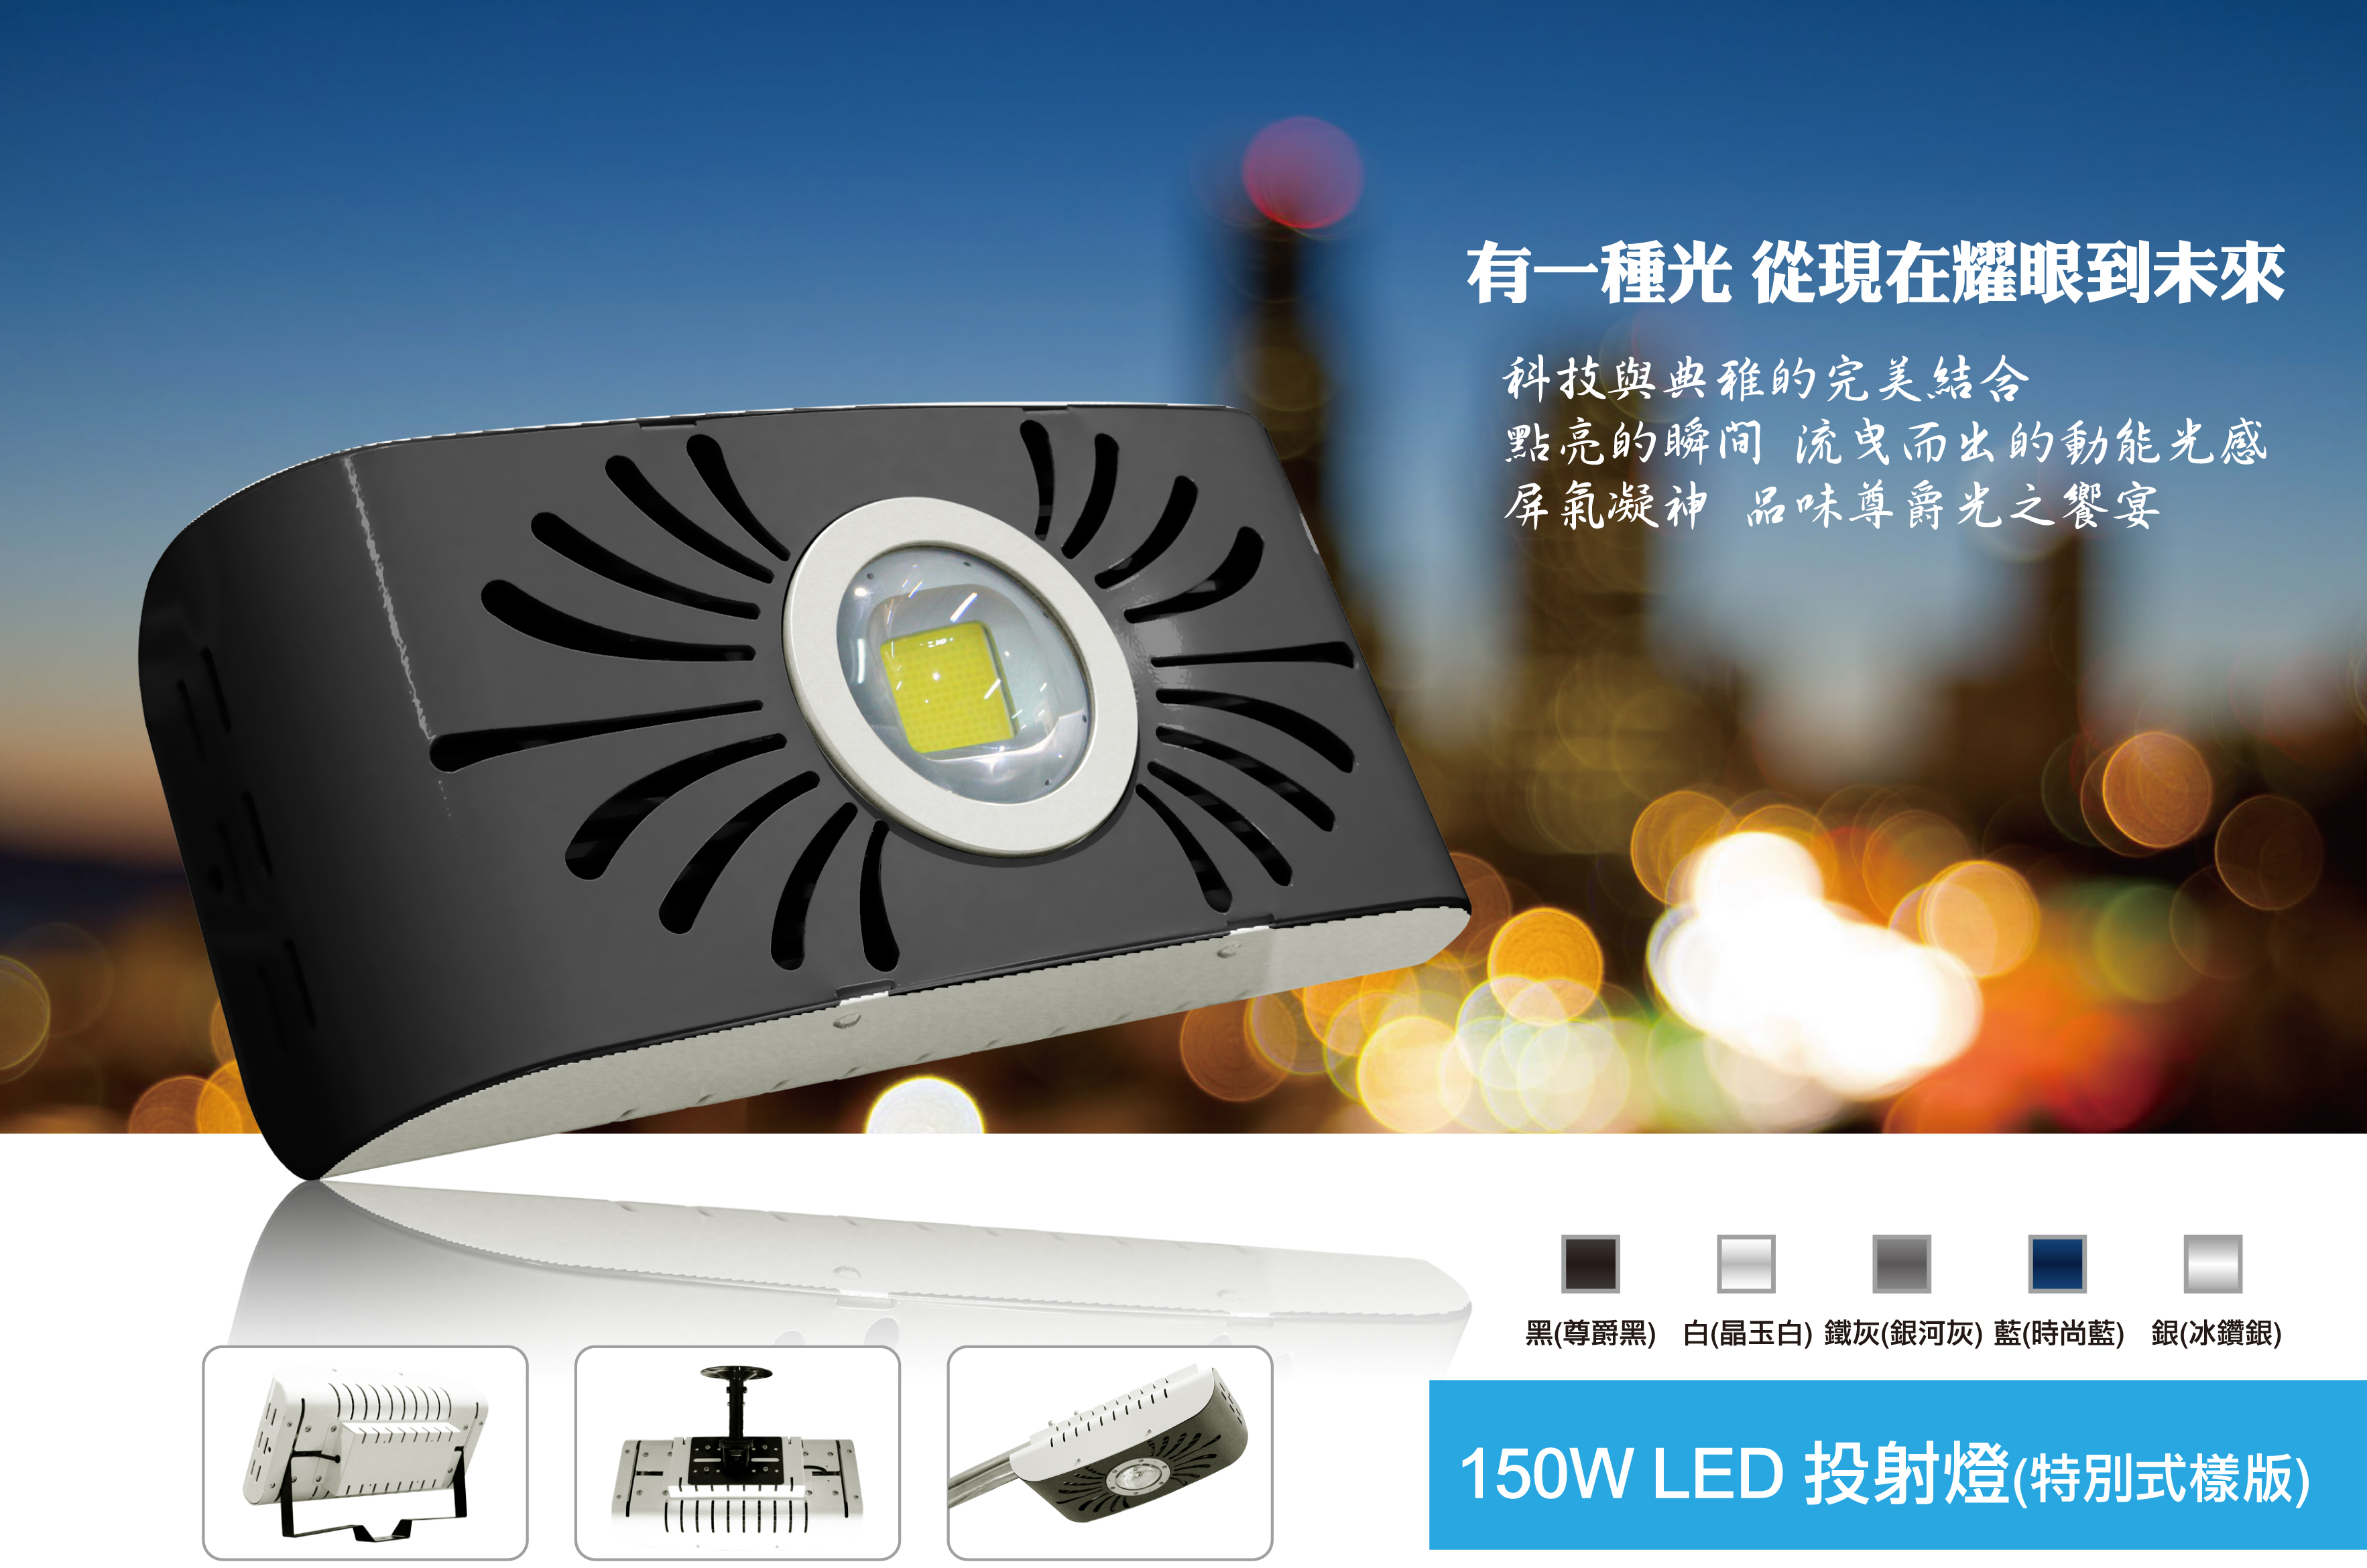 /archive/product/item/images/LED/150W 投射燈-1.jpg